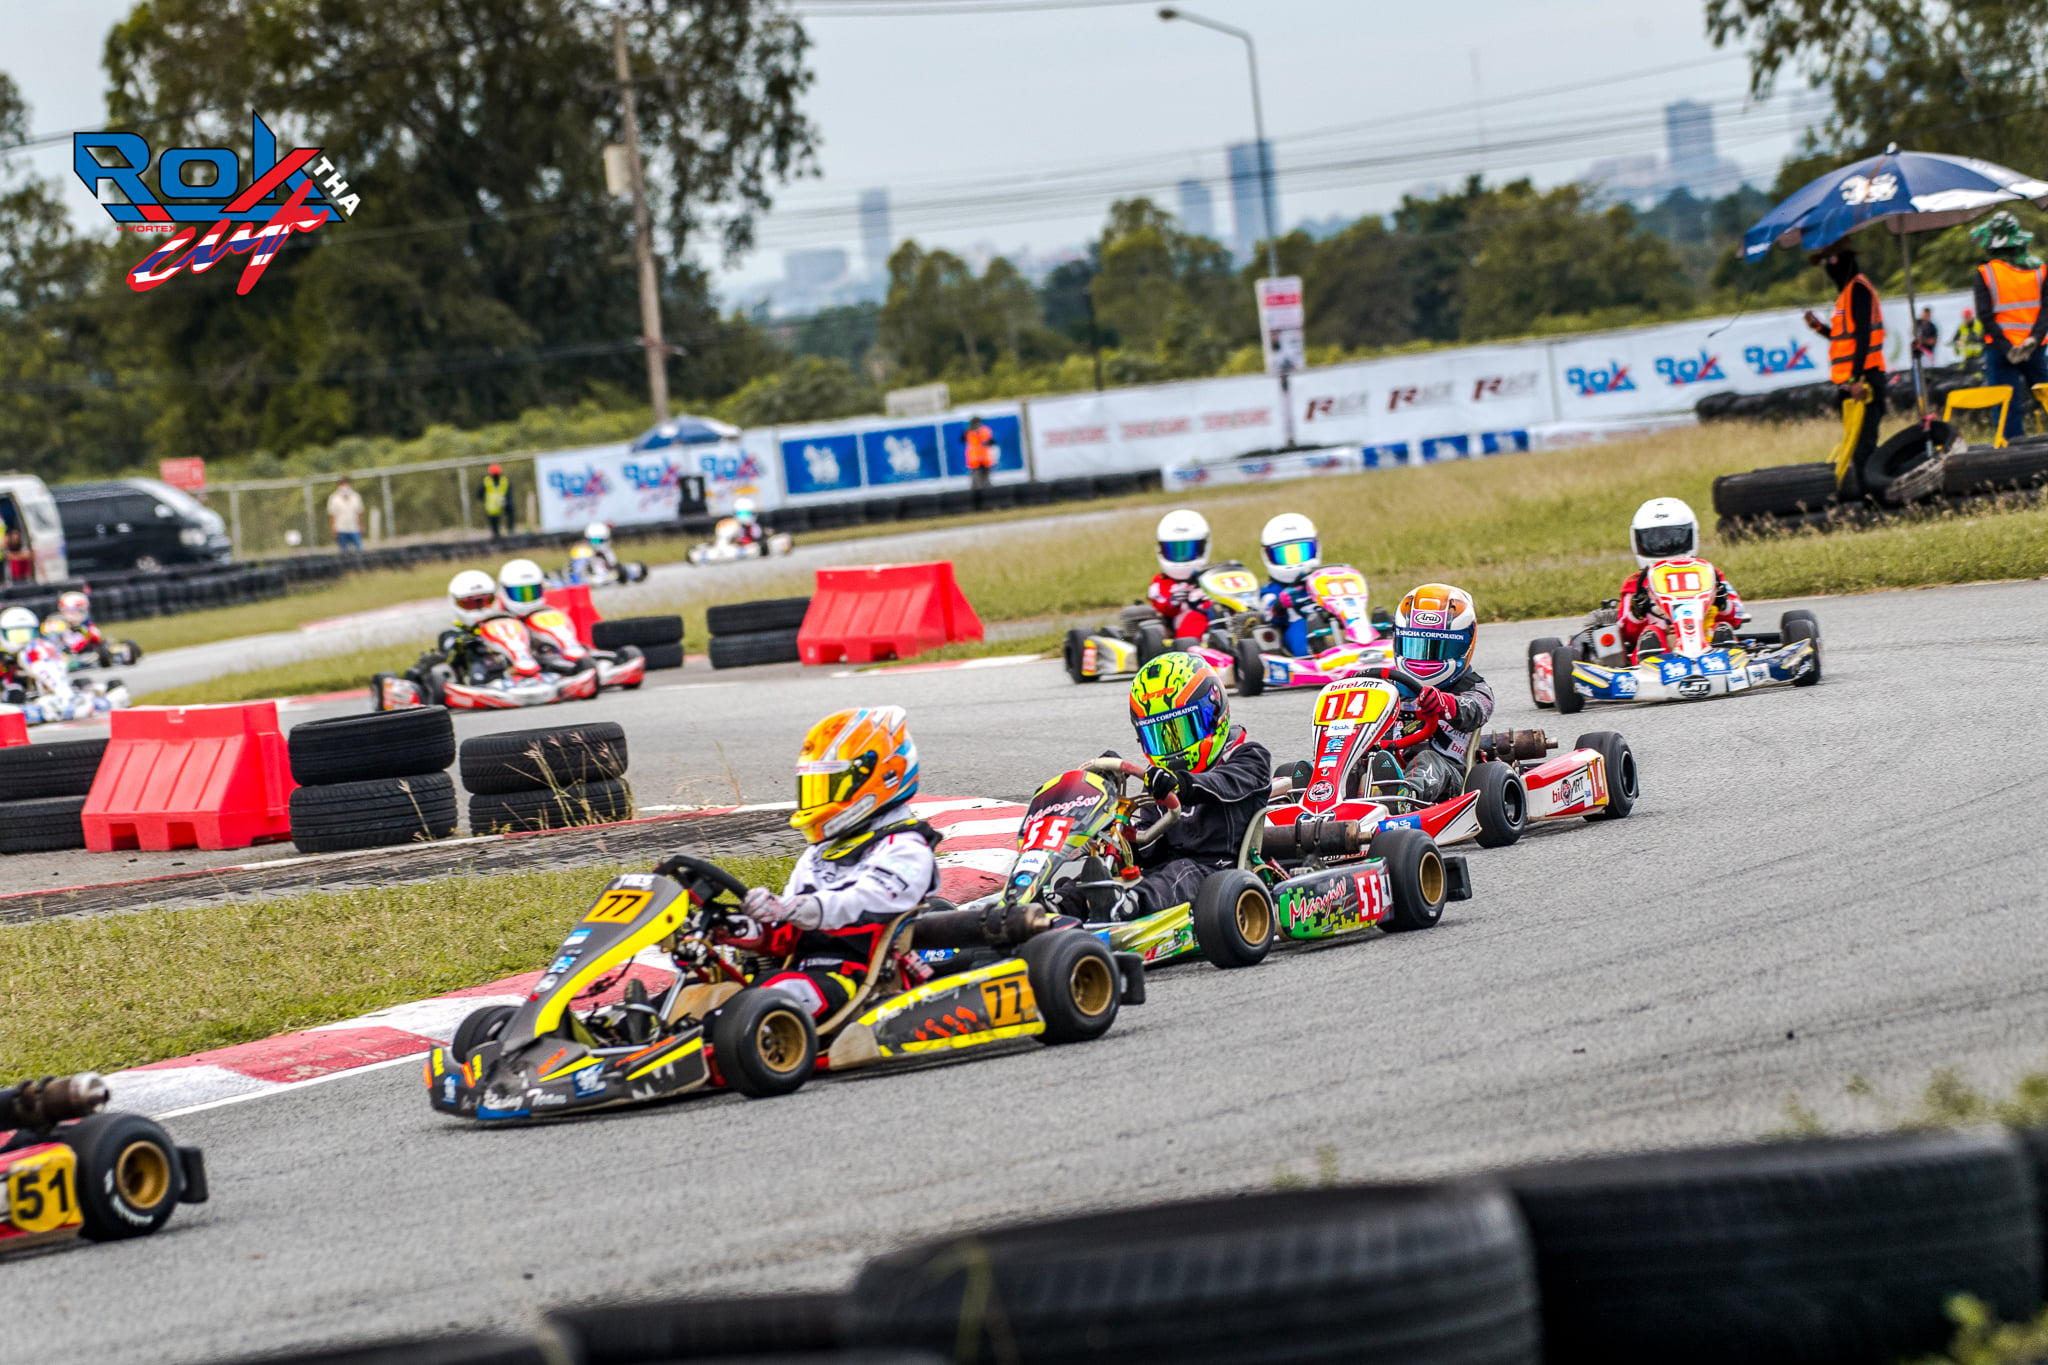 Round 4 (Final Round) : 29-11-2020 ROK CUP THAILAND 2020 AT BIRA